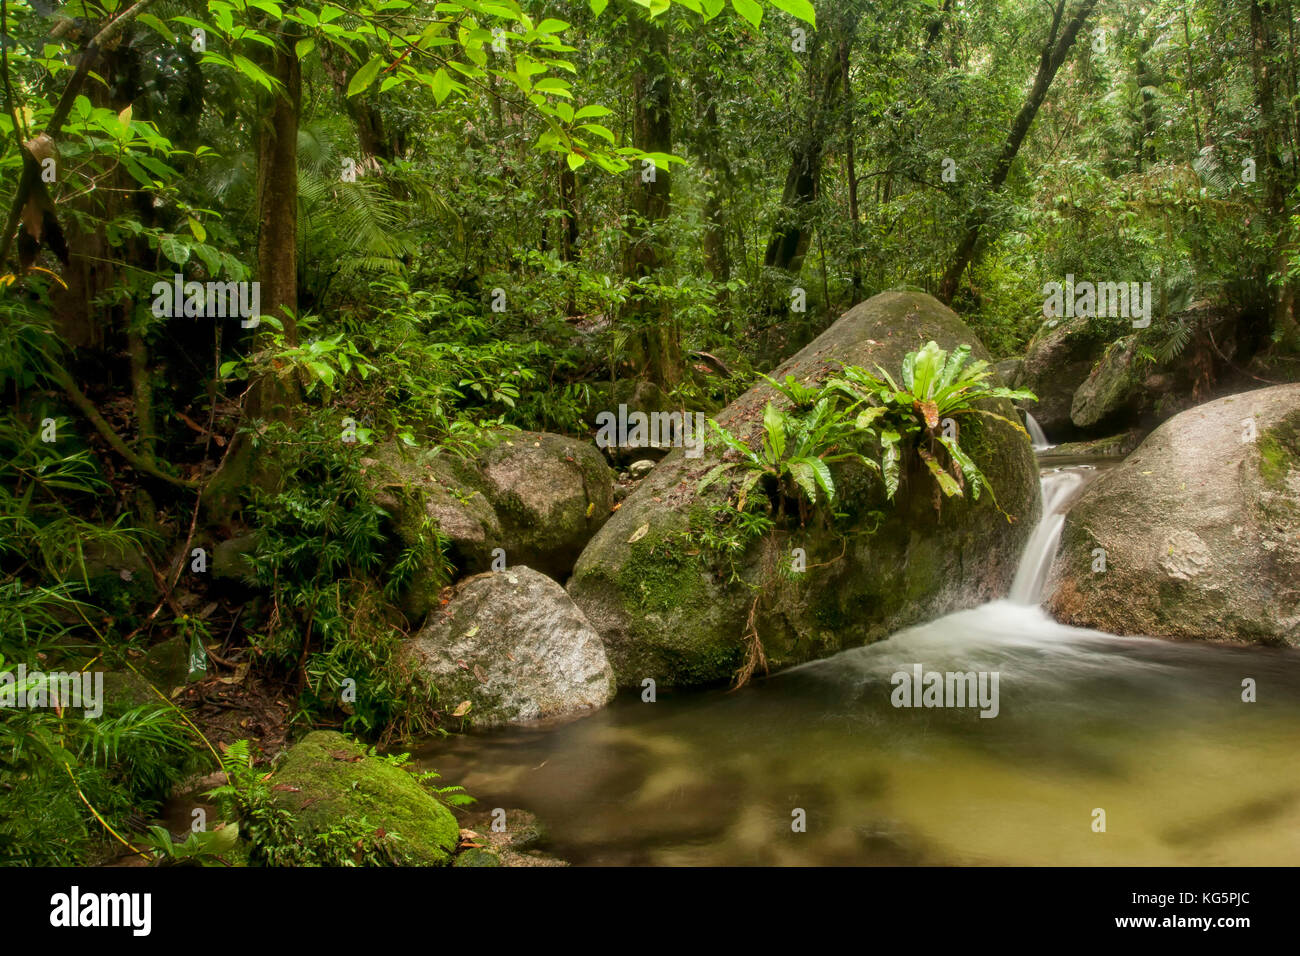 ferns on rock in woodland river, Daintree, Cairns, Australia Stock Photo